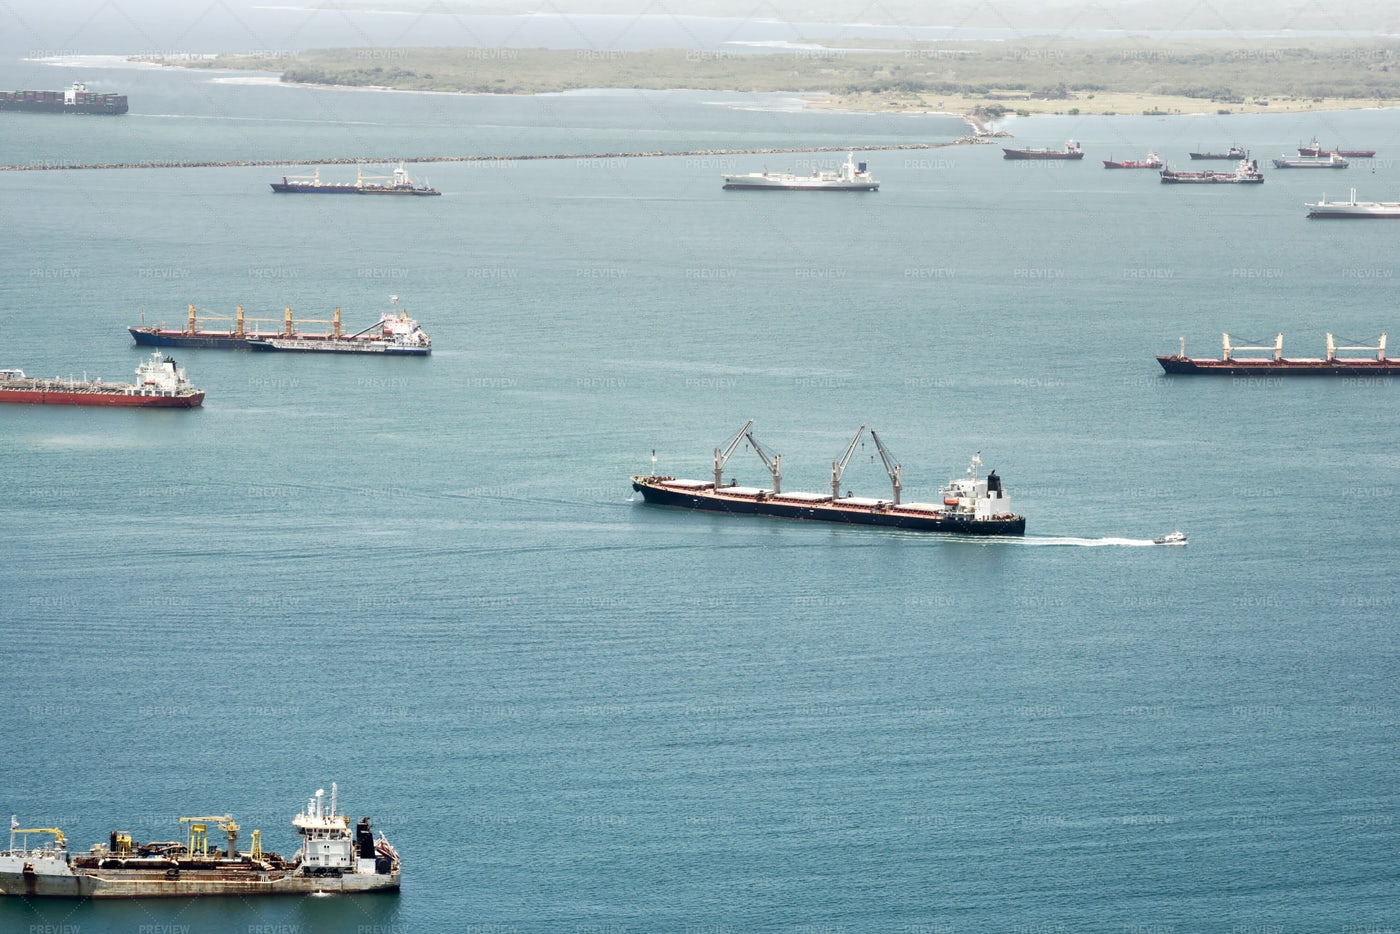 Aerial View Of Large Cargo Ships: Stock Photos